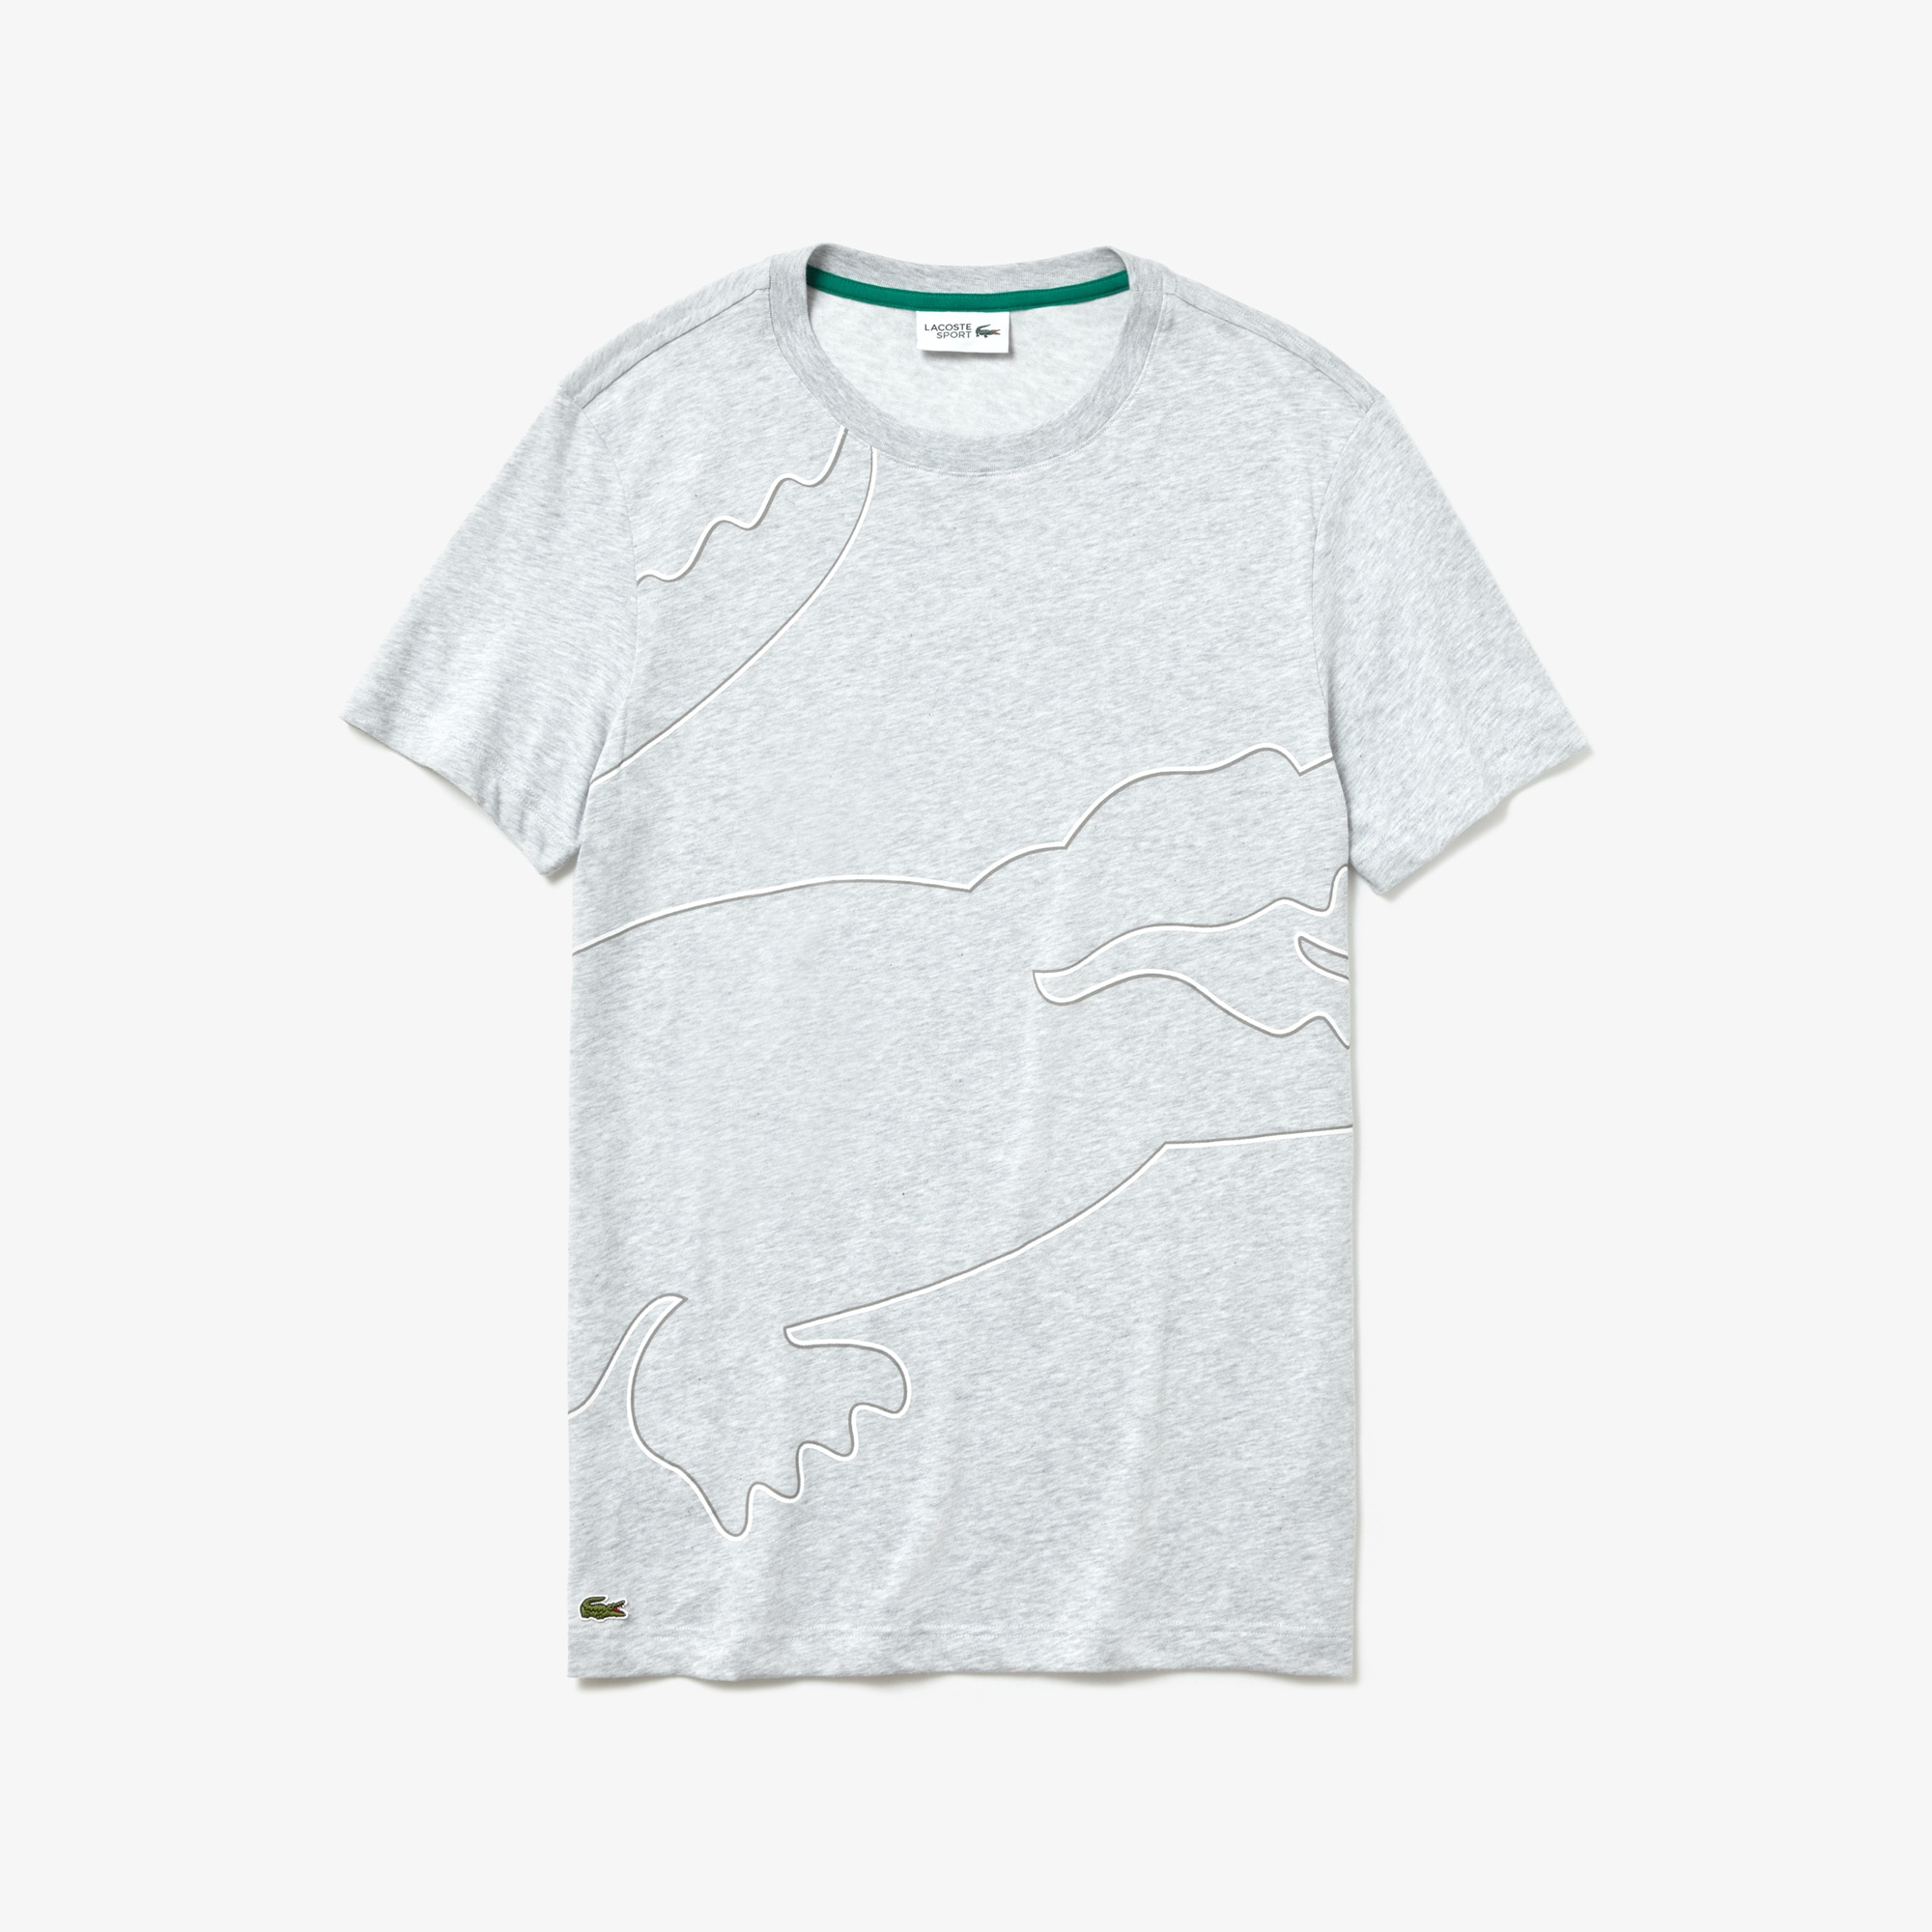 라코스테 Lacoste Mens SPORT Crew Neck Tech Jersey T-shirt,grey chine / white / dark grey / green